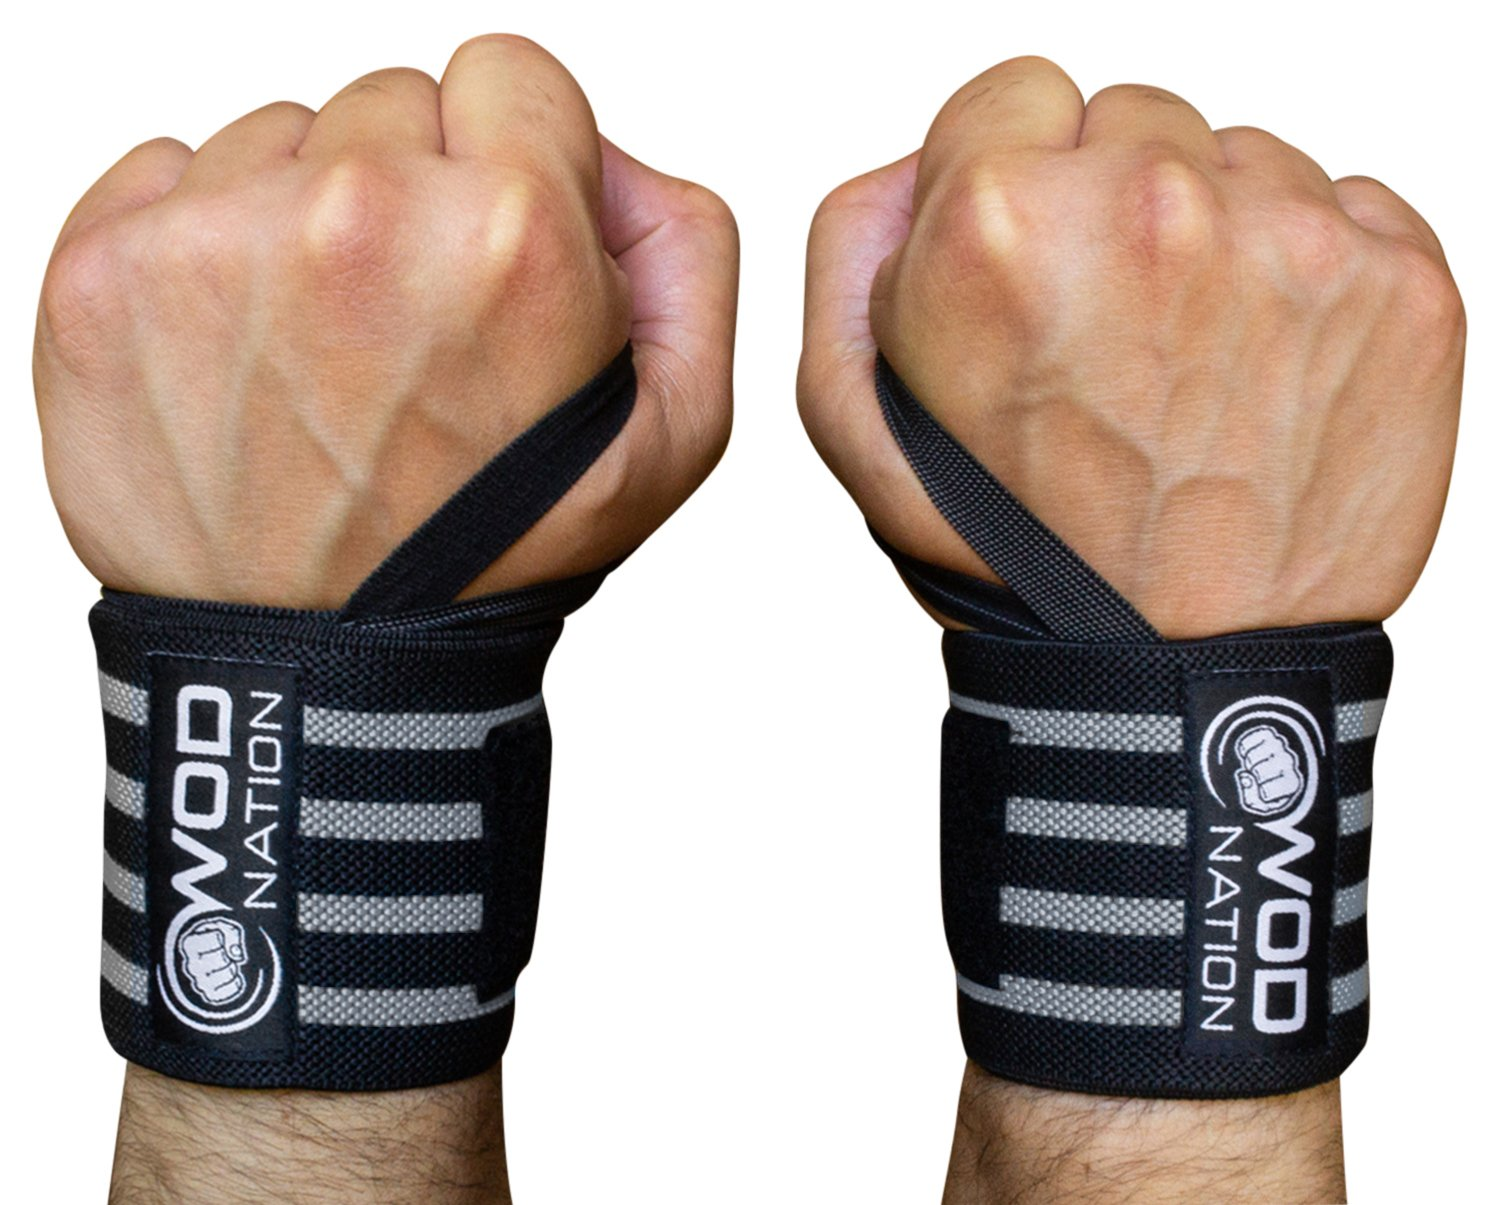 WOD Nation Wrist Wraps by Wrist Support Straps (12'', 18'' or 24'') - Fits Both Men & Women - Strength Training, Weightlifting, Powerlifting - Lift Heavier Weight (18 Inch - Black/Grey) by WOD Nation (Image #1)